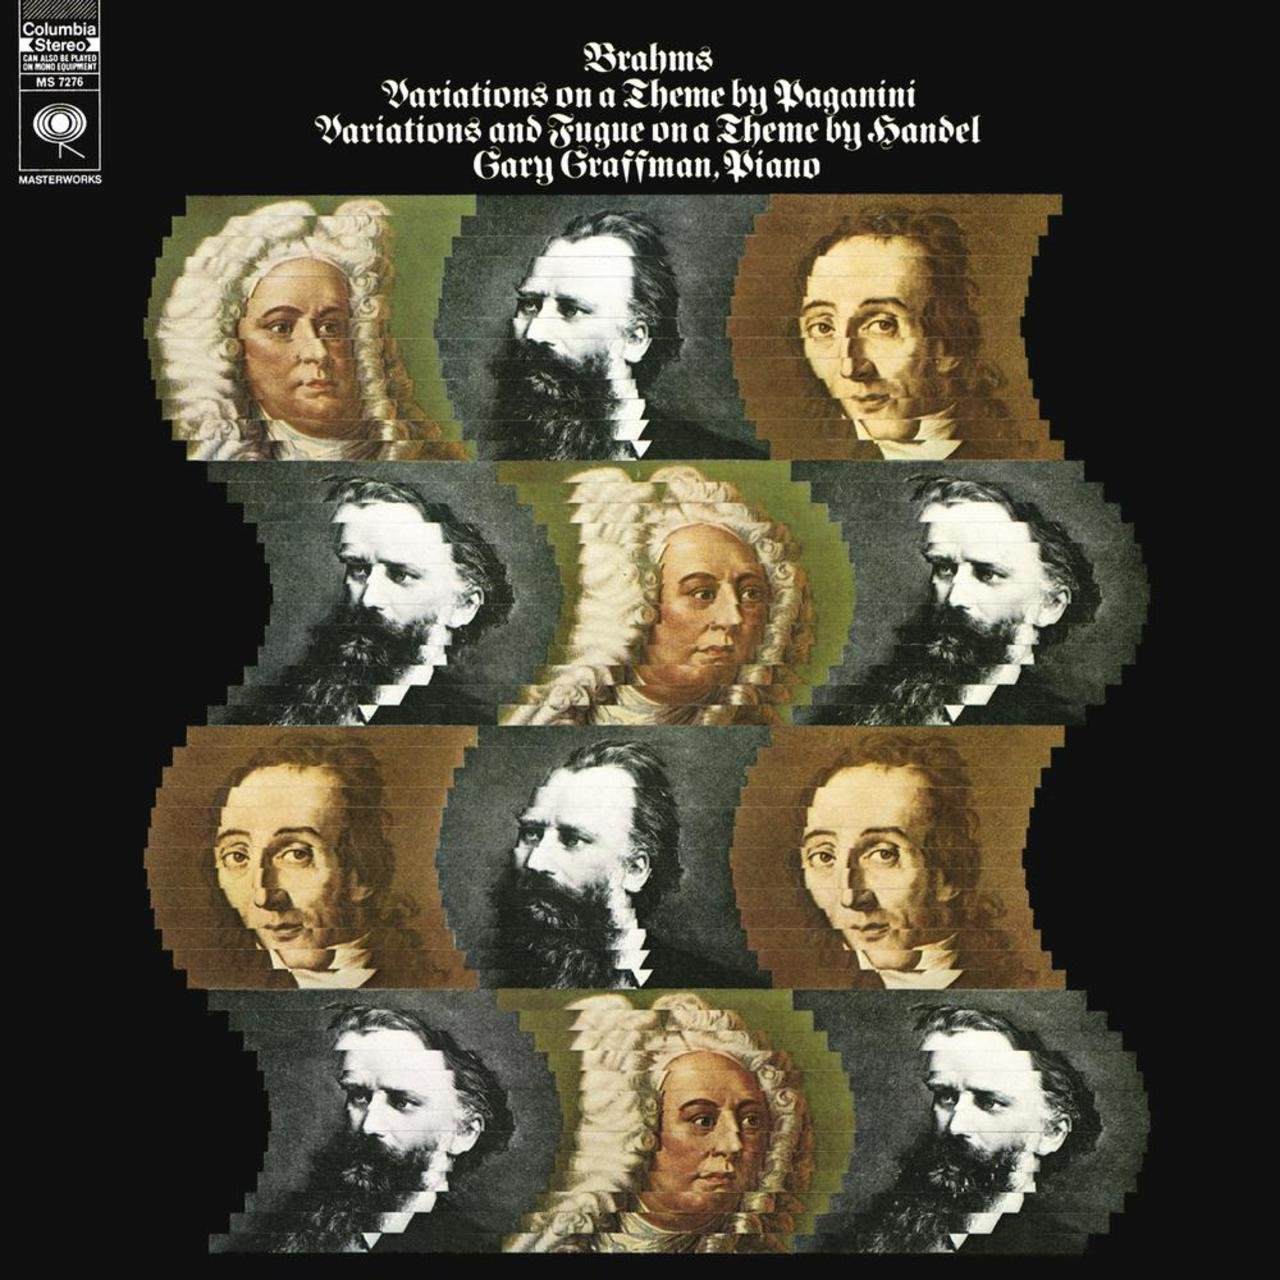 Brahms: Variations on a Theme by Paganini, Op. 35 - Variations and Fugue in B-Flat Major on a Theme by Handel, Op. 24